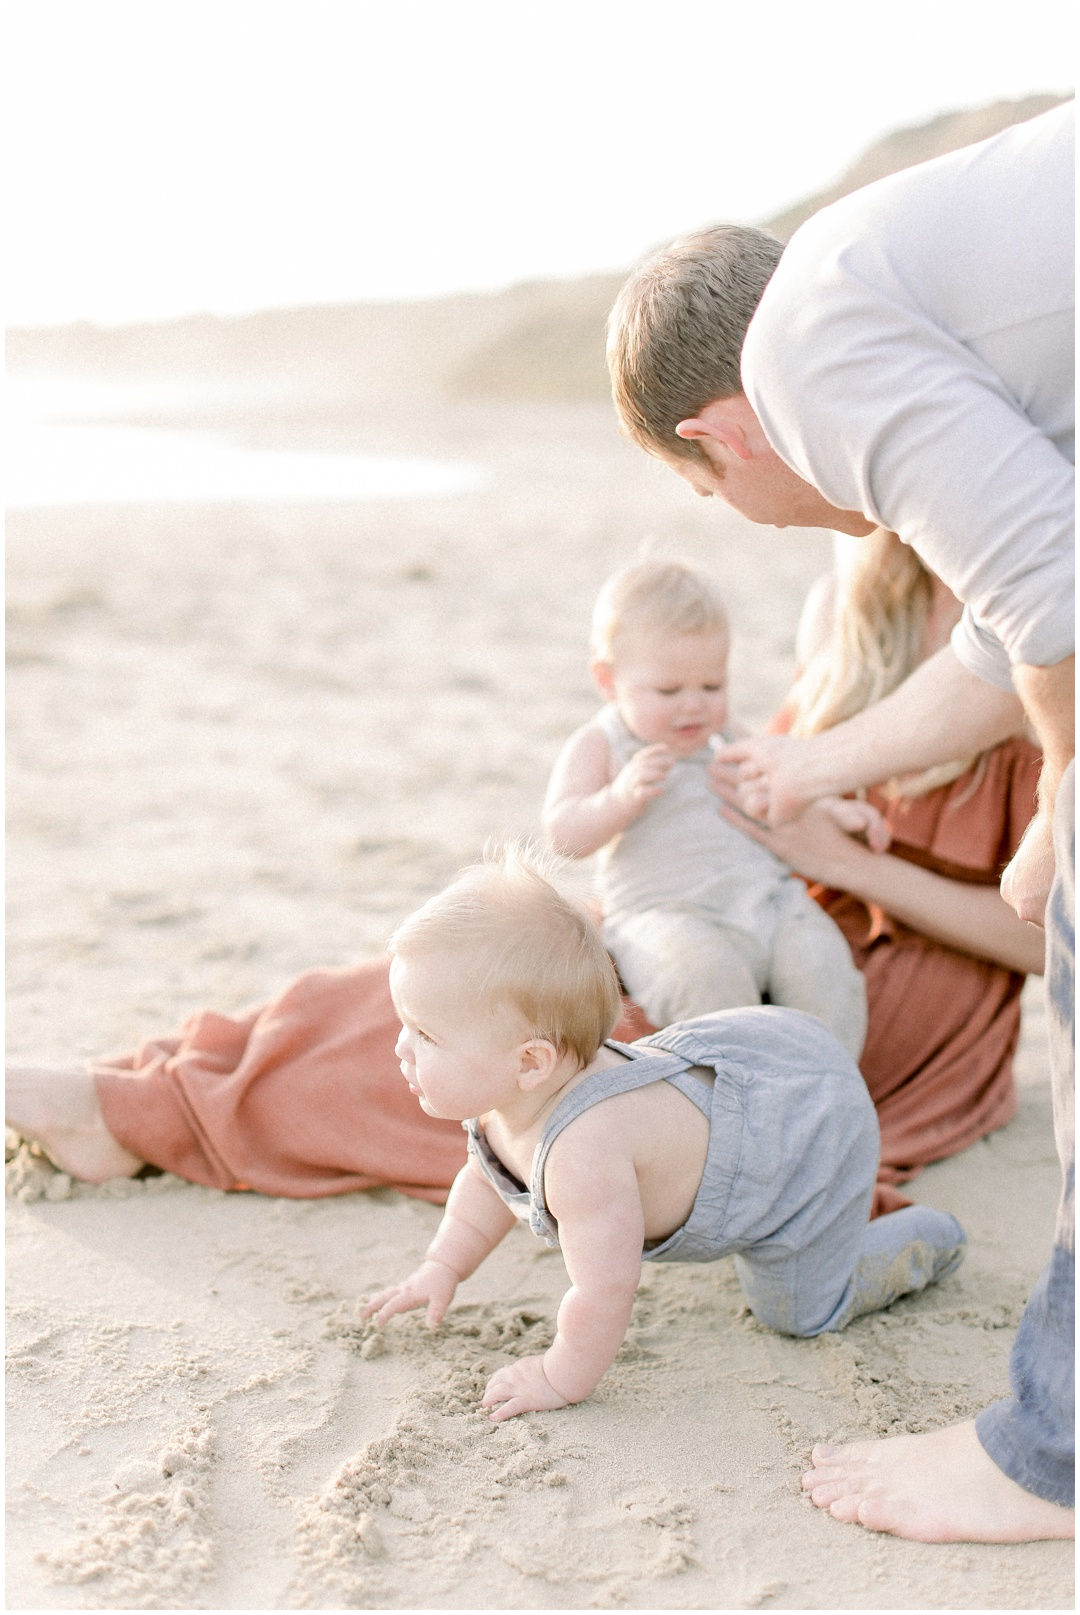 Newport_Beach_Newborn_Light_Airy_Natural_Photographer_Newport_Beach_Photographer_Orange_County_Family_Photographer_Cori_Kleckner_Photography_Huntington_Beach_Photographer_Family_OC_Newborn_Kelly_Bandak_Nik_Bandak__3516.jpg